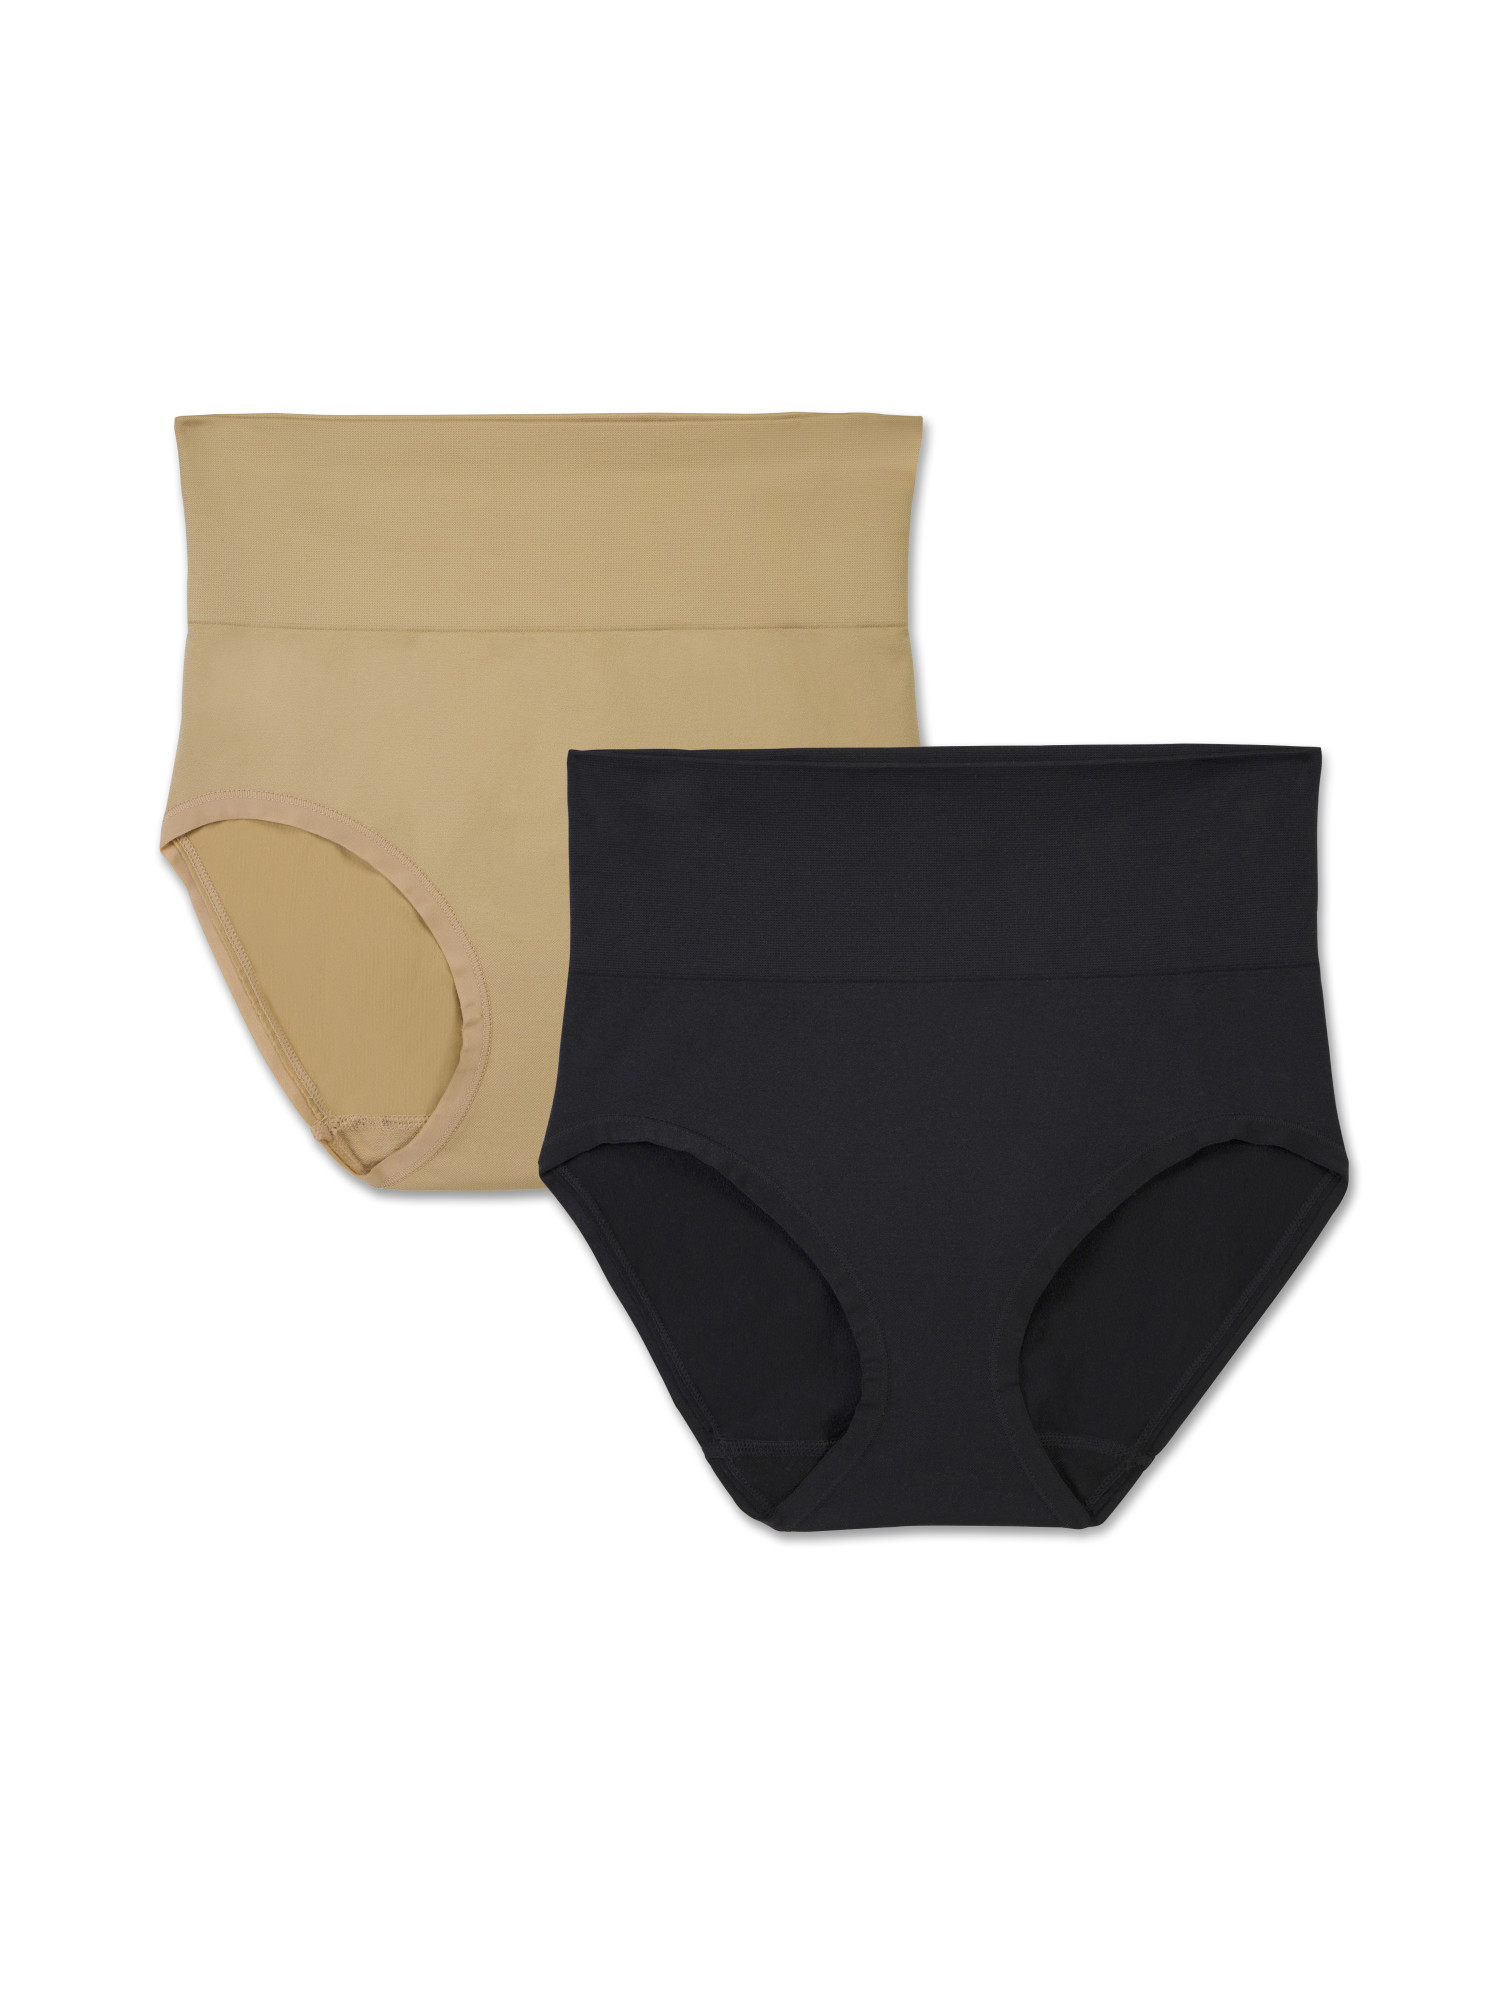 Women's 2 Pack Seamless Smoothing Brief Panty, Style 13274